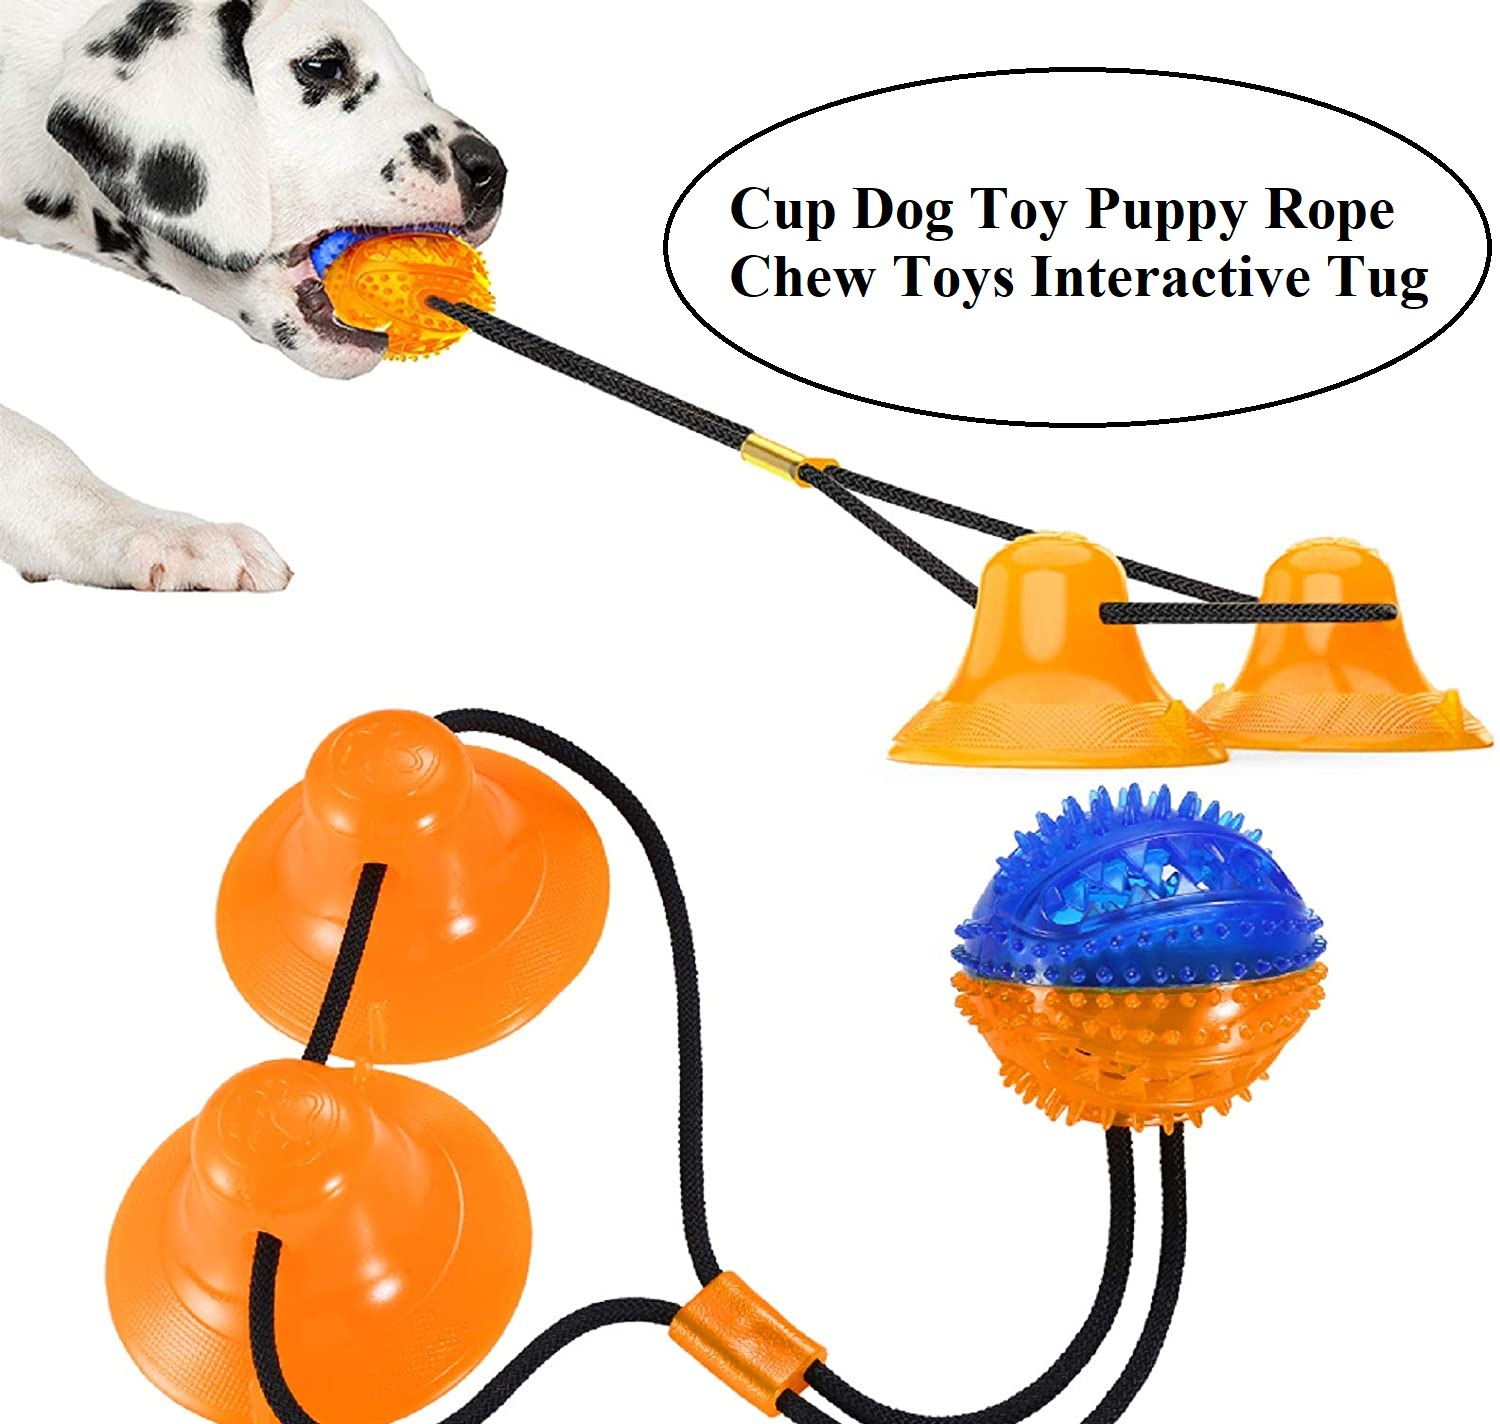 Cup Dog Toy Puppy Rope Chew Toys Interactive Tug